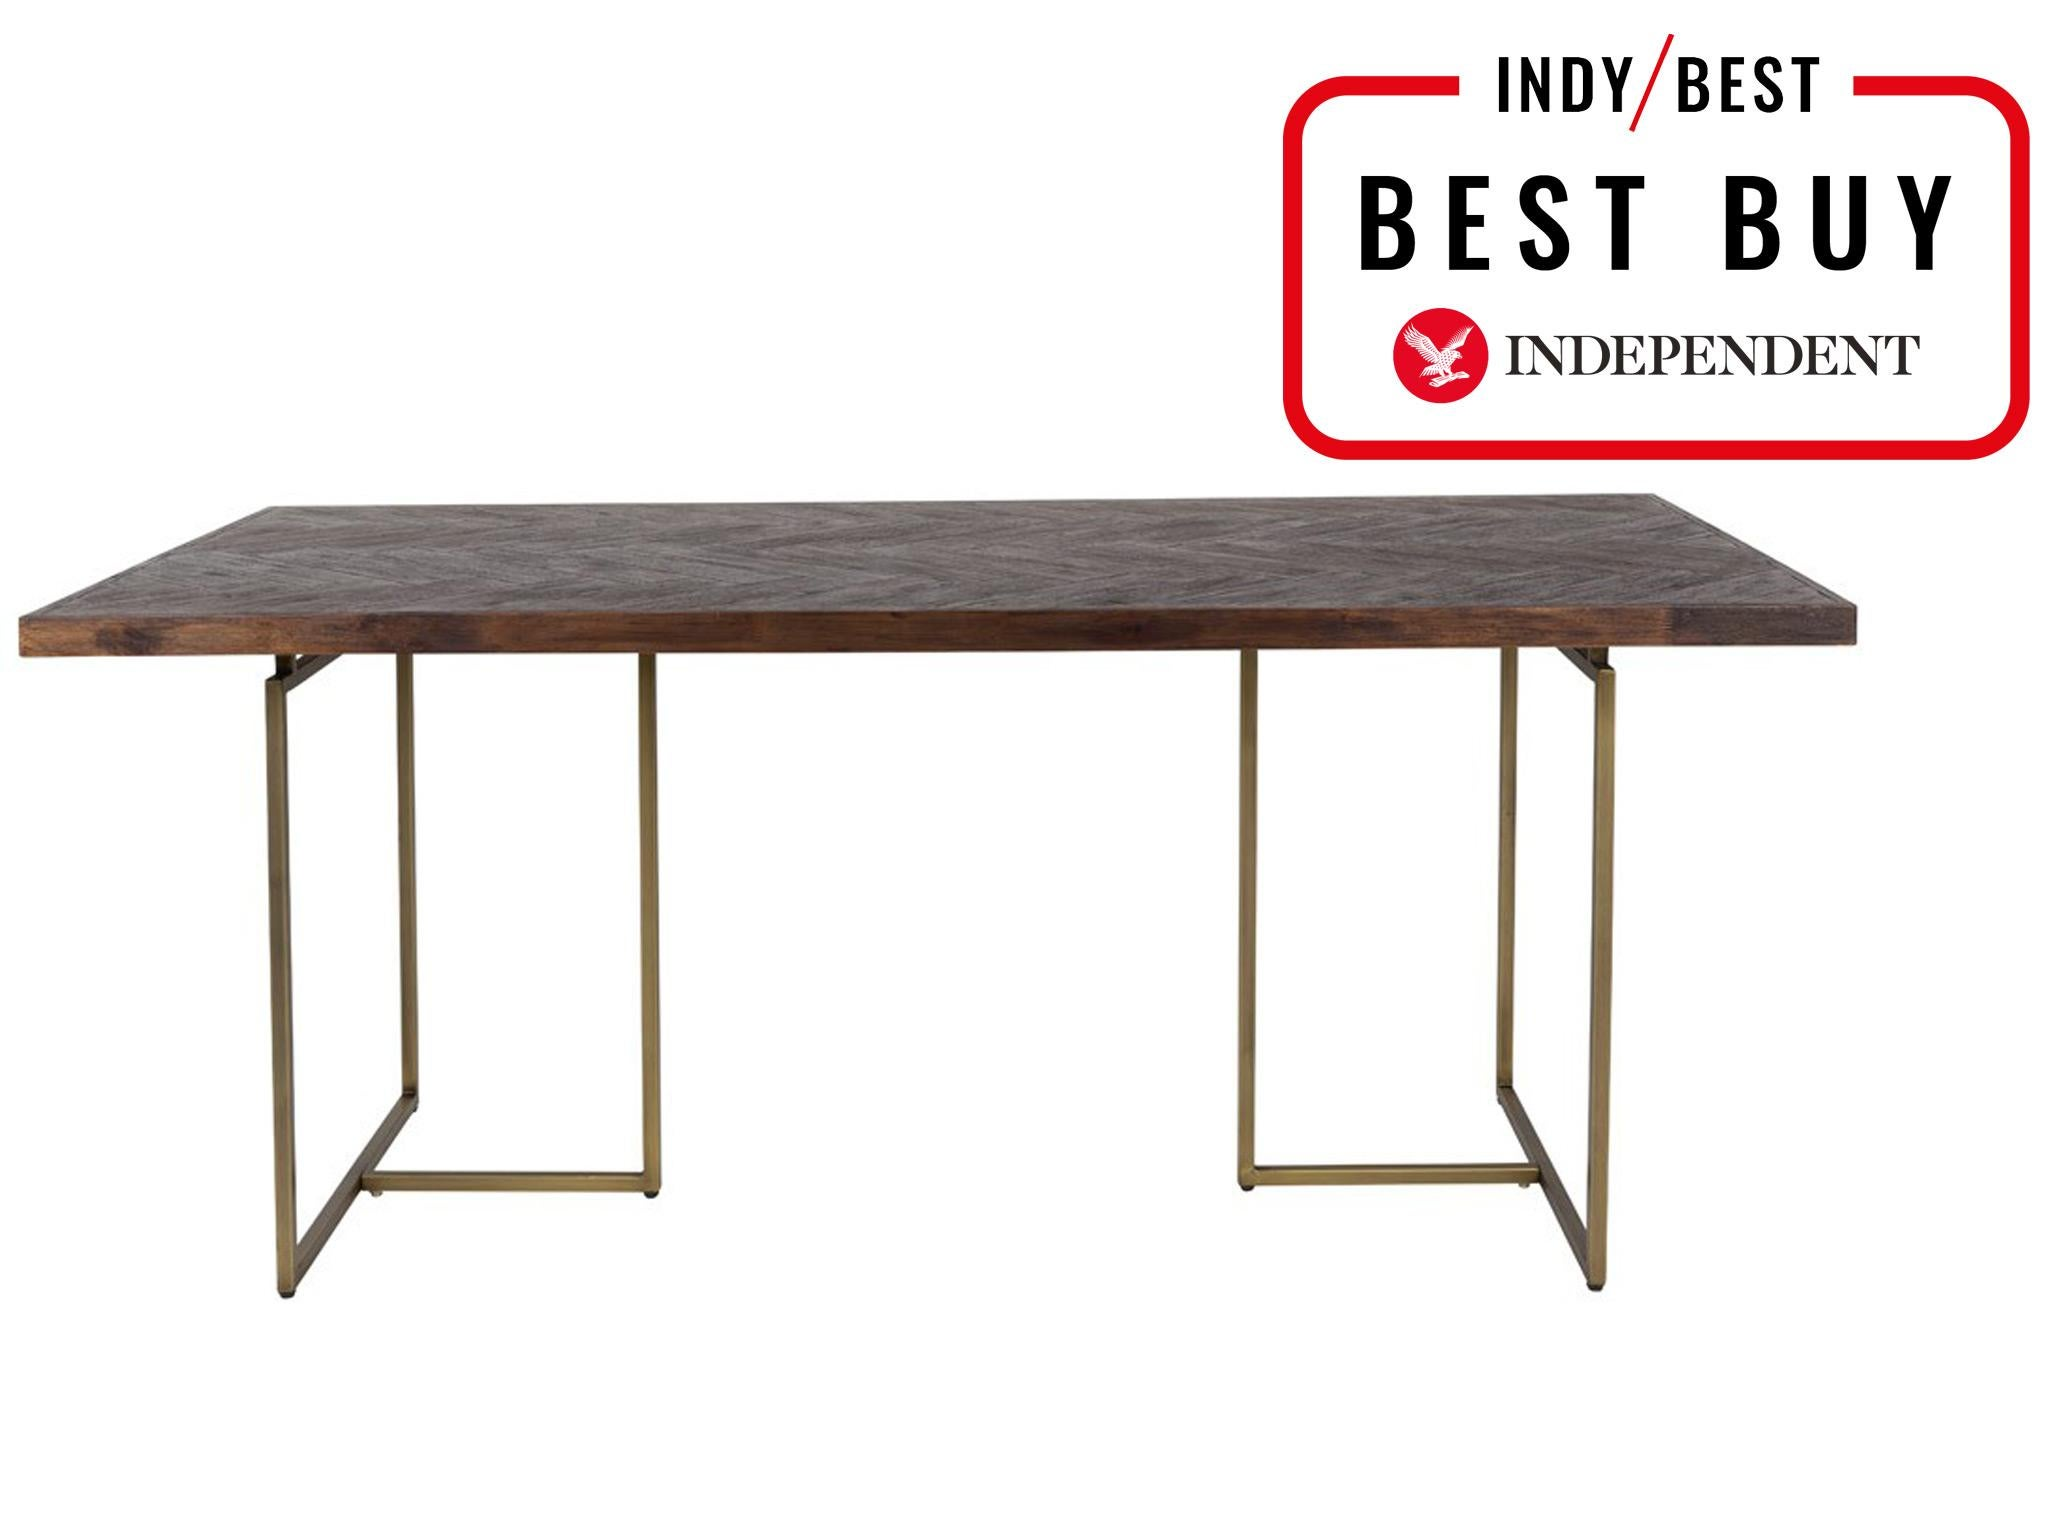 Terrific 10 Best Dining Tables The Independent Download Free Architecture Designs Xaembritishbridgeorg